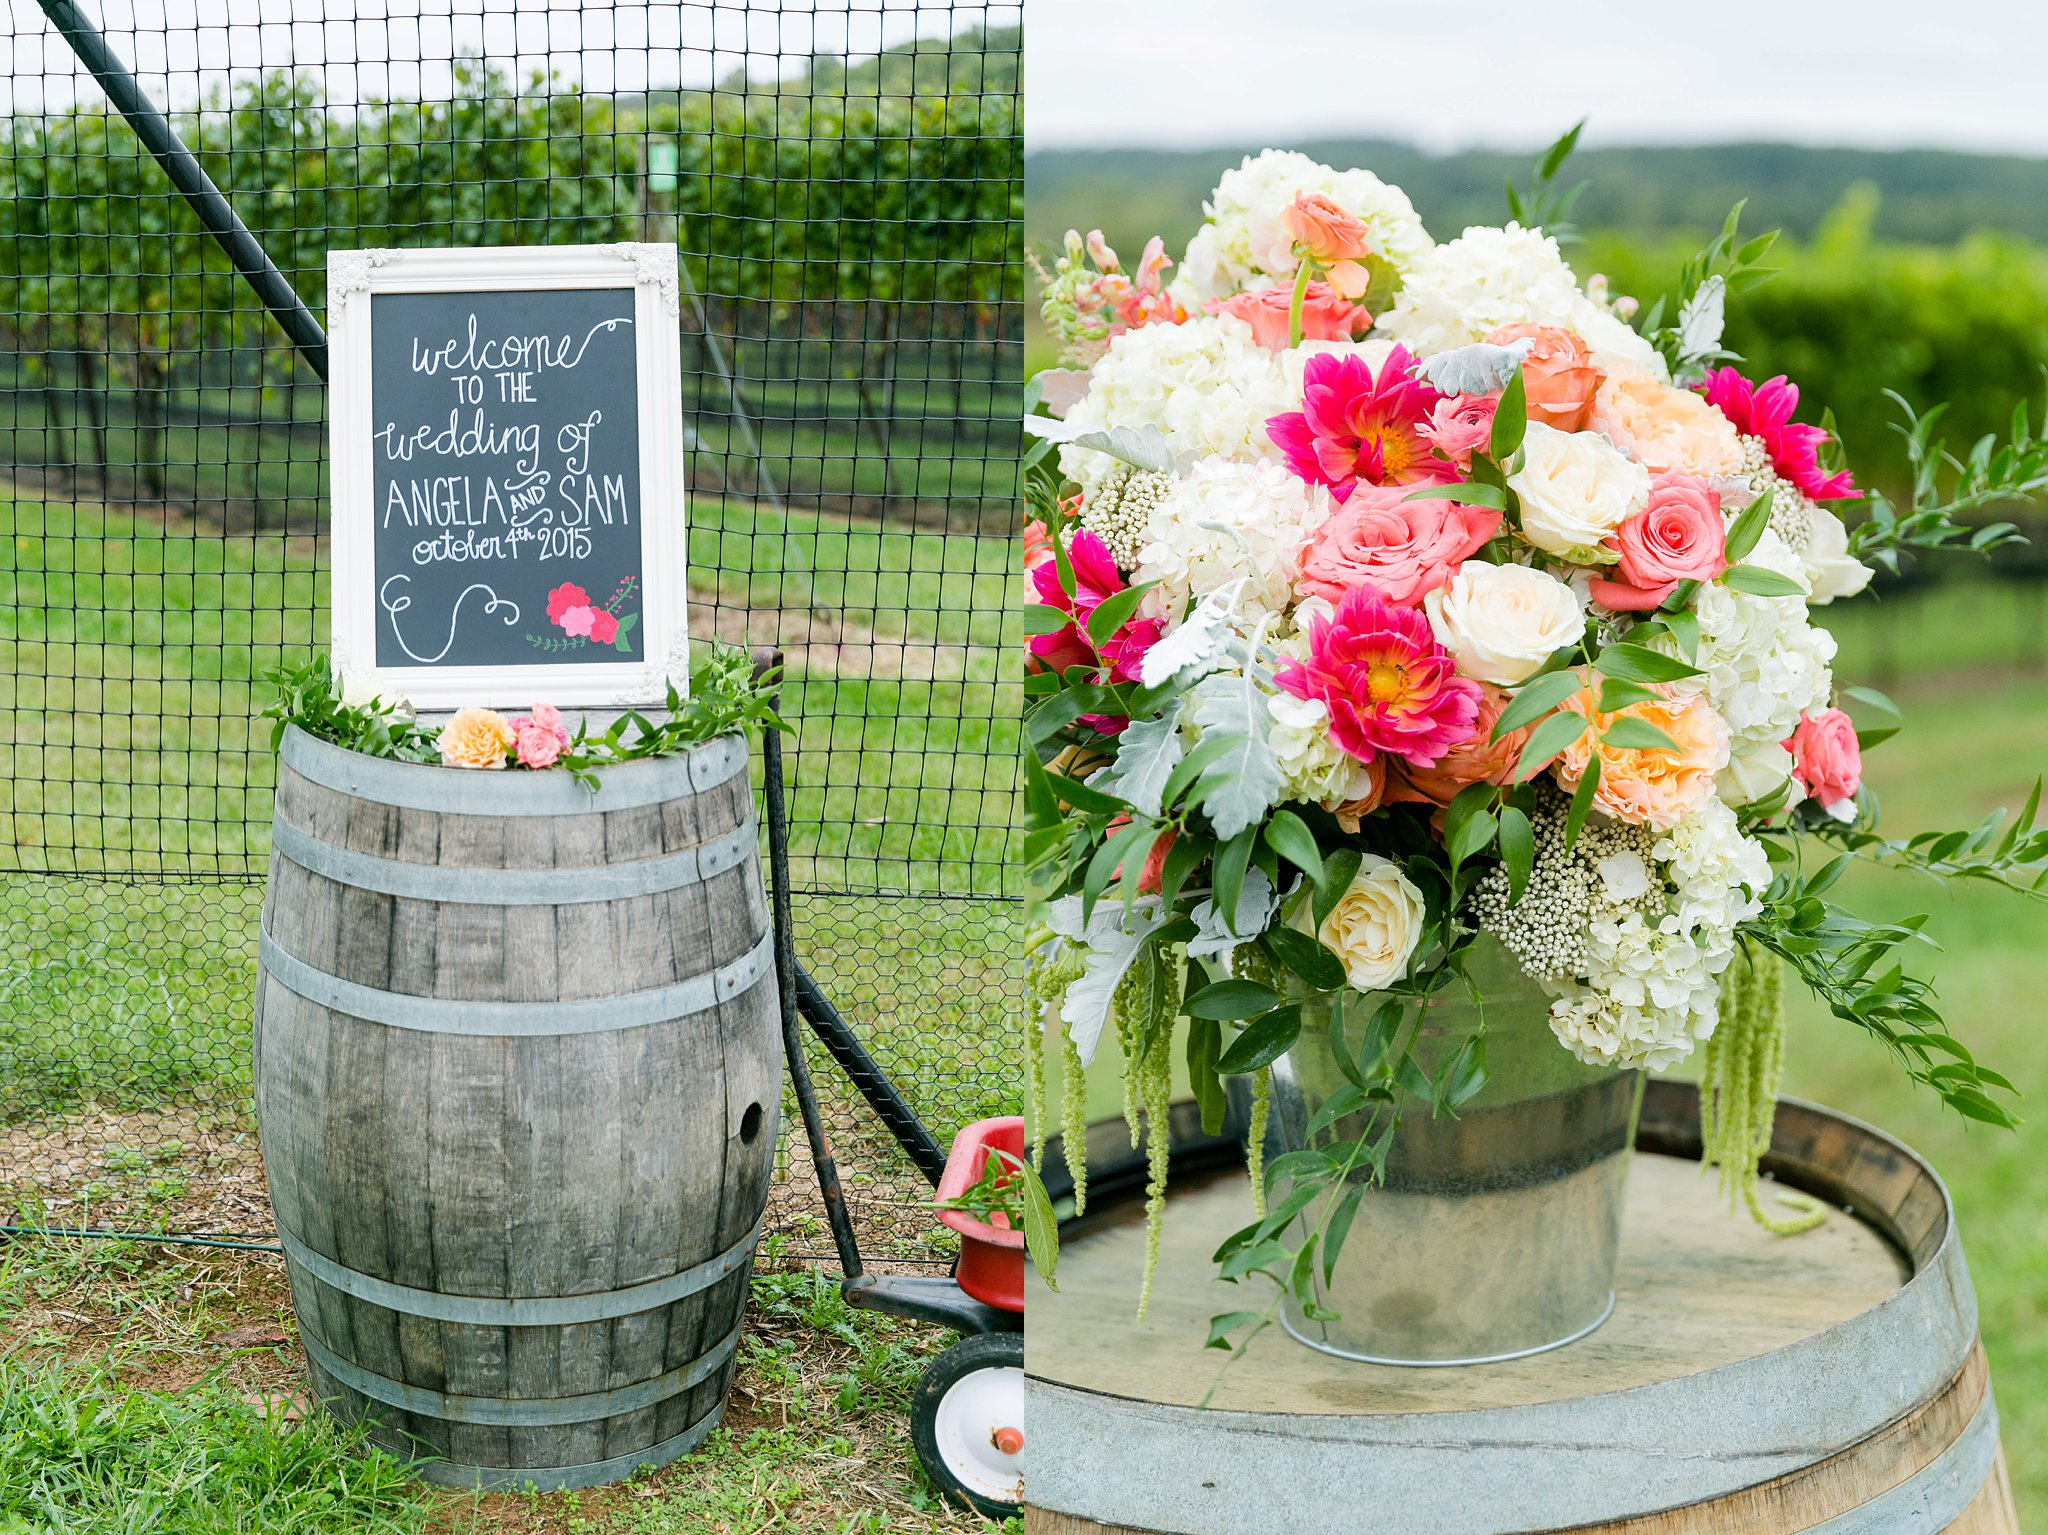 Stone Tower Winery Wedding Photos Virginia Wedding Photographer Megan Kelsey Photography Sam & Angela-111.jpg